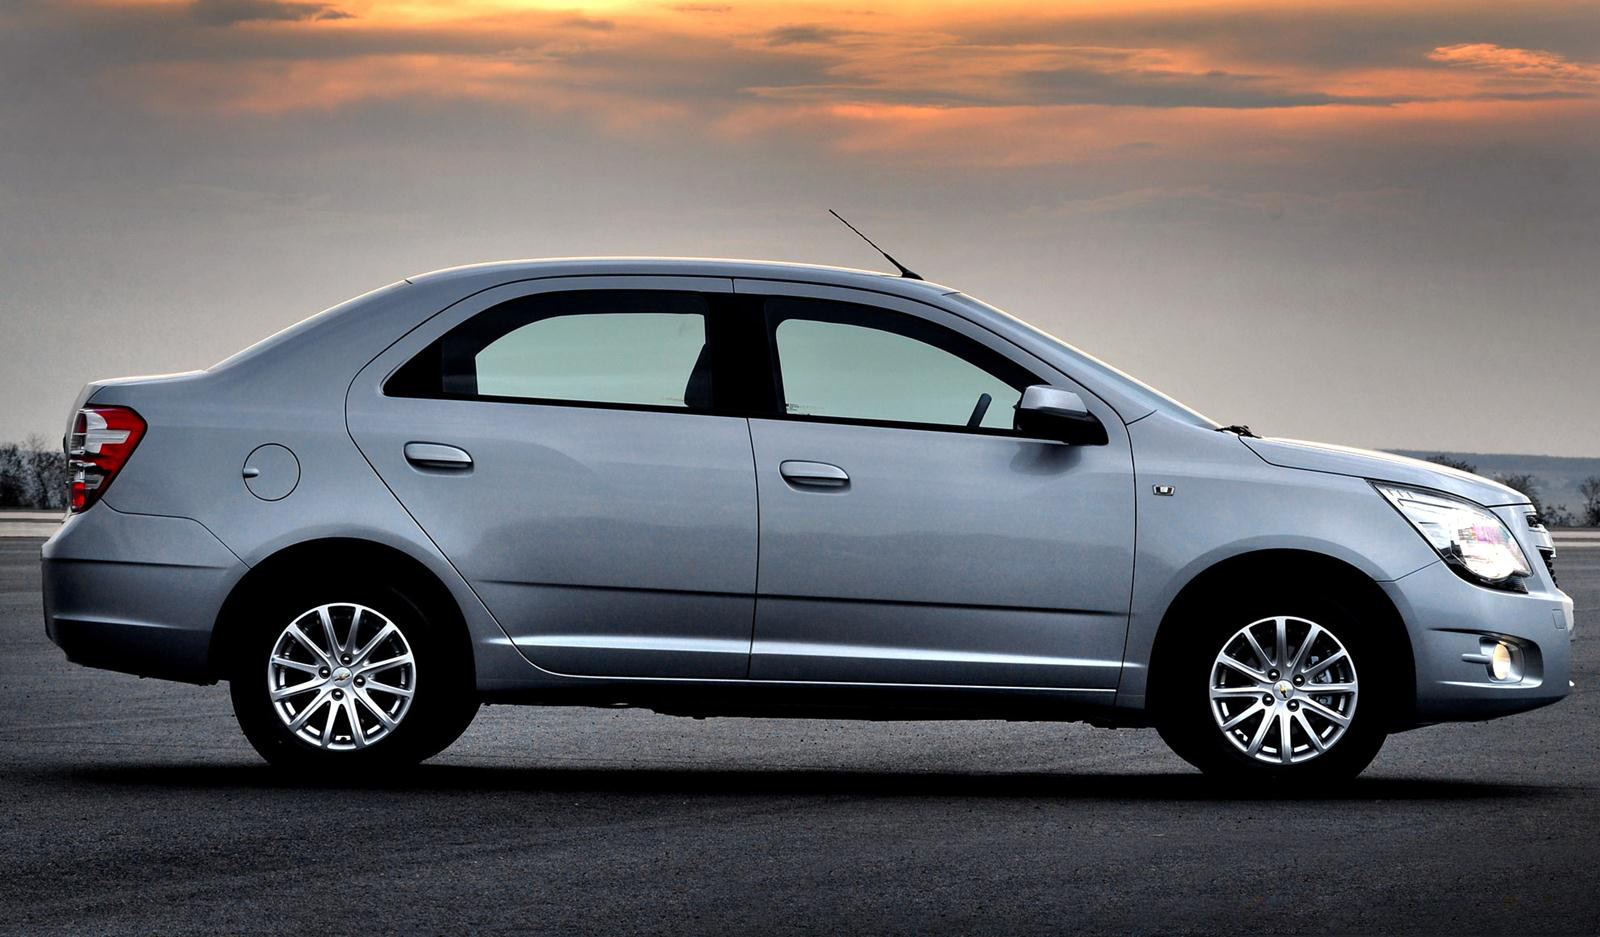 a car Chevrolet Cobalt 2013